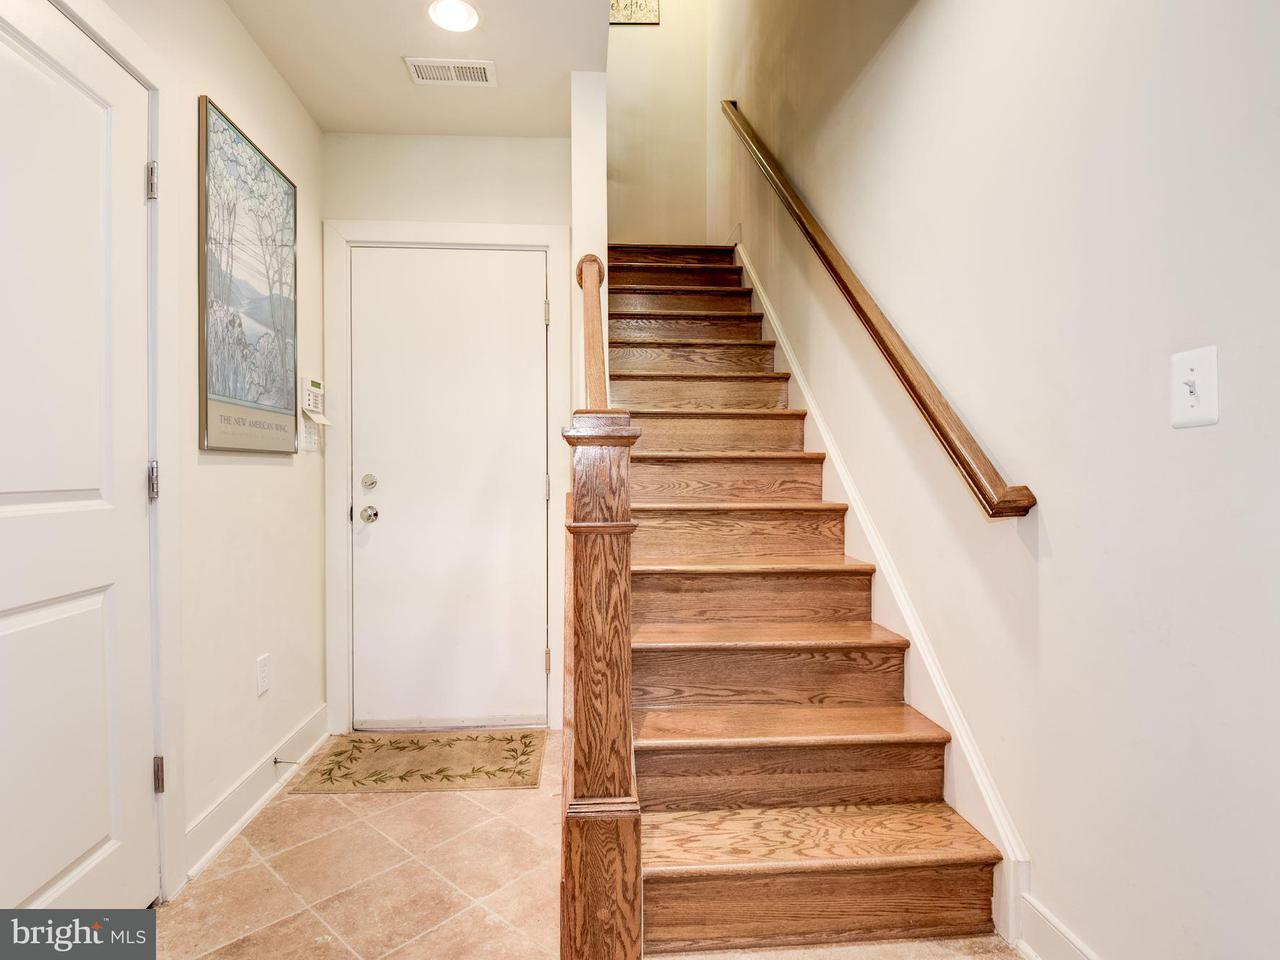 Townhouse for Sale at 419 K ST SE 419 K ST SE Washington, District Of Columbia 20003 United States